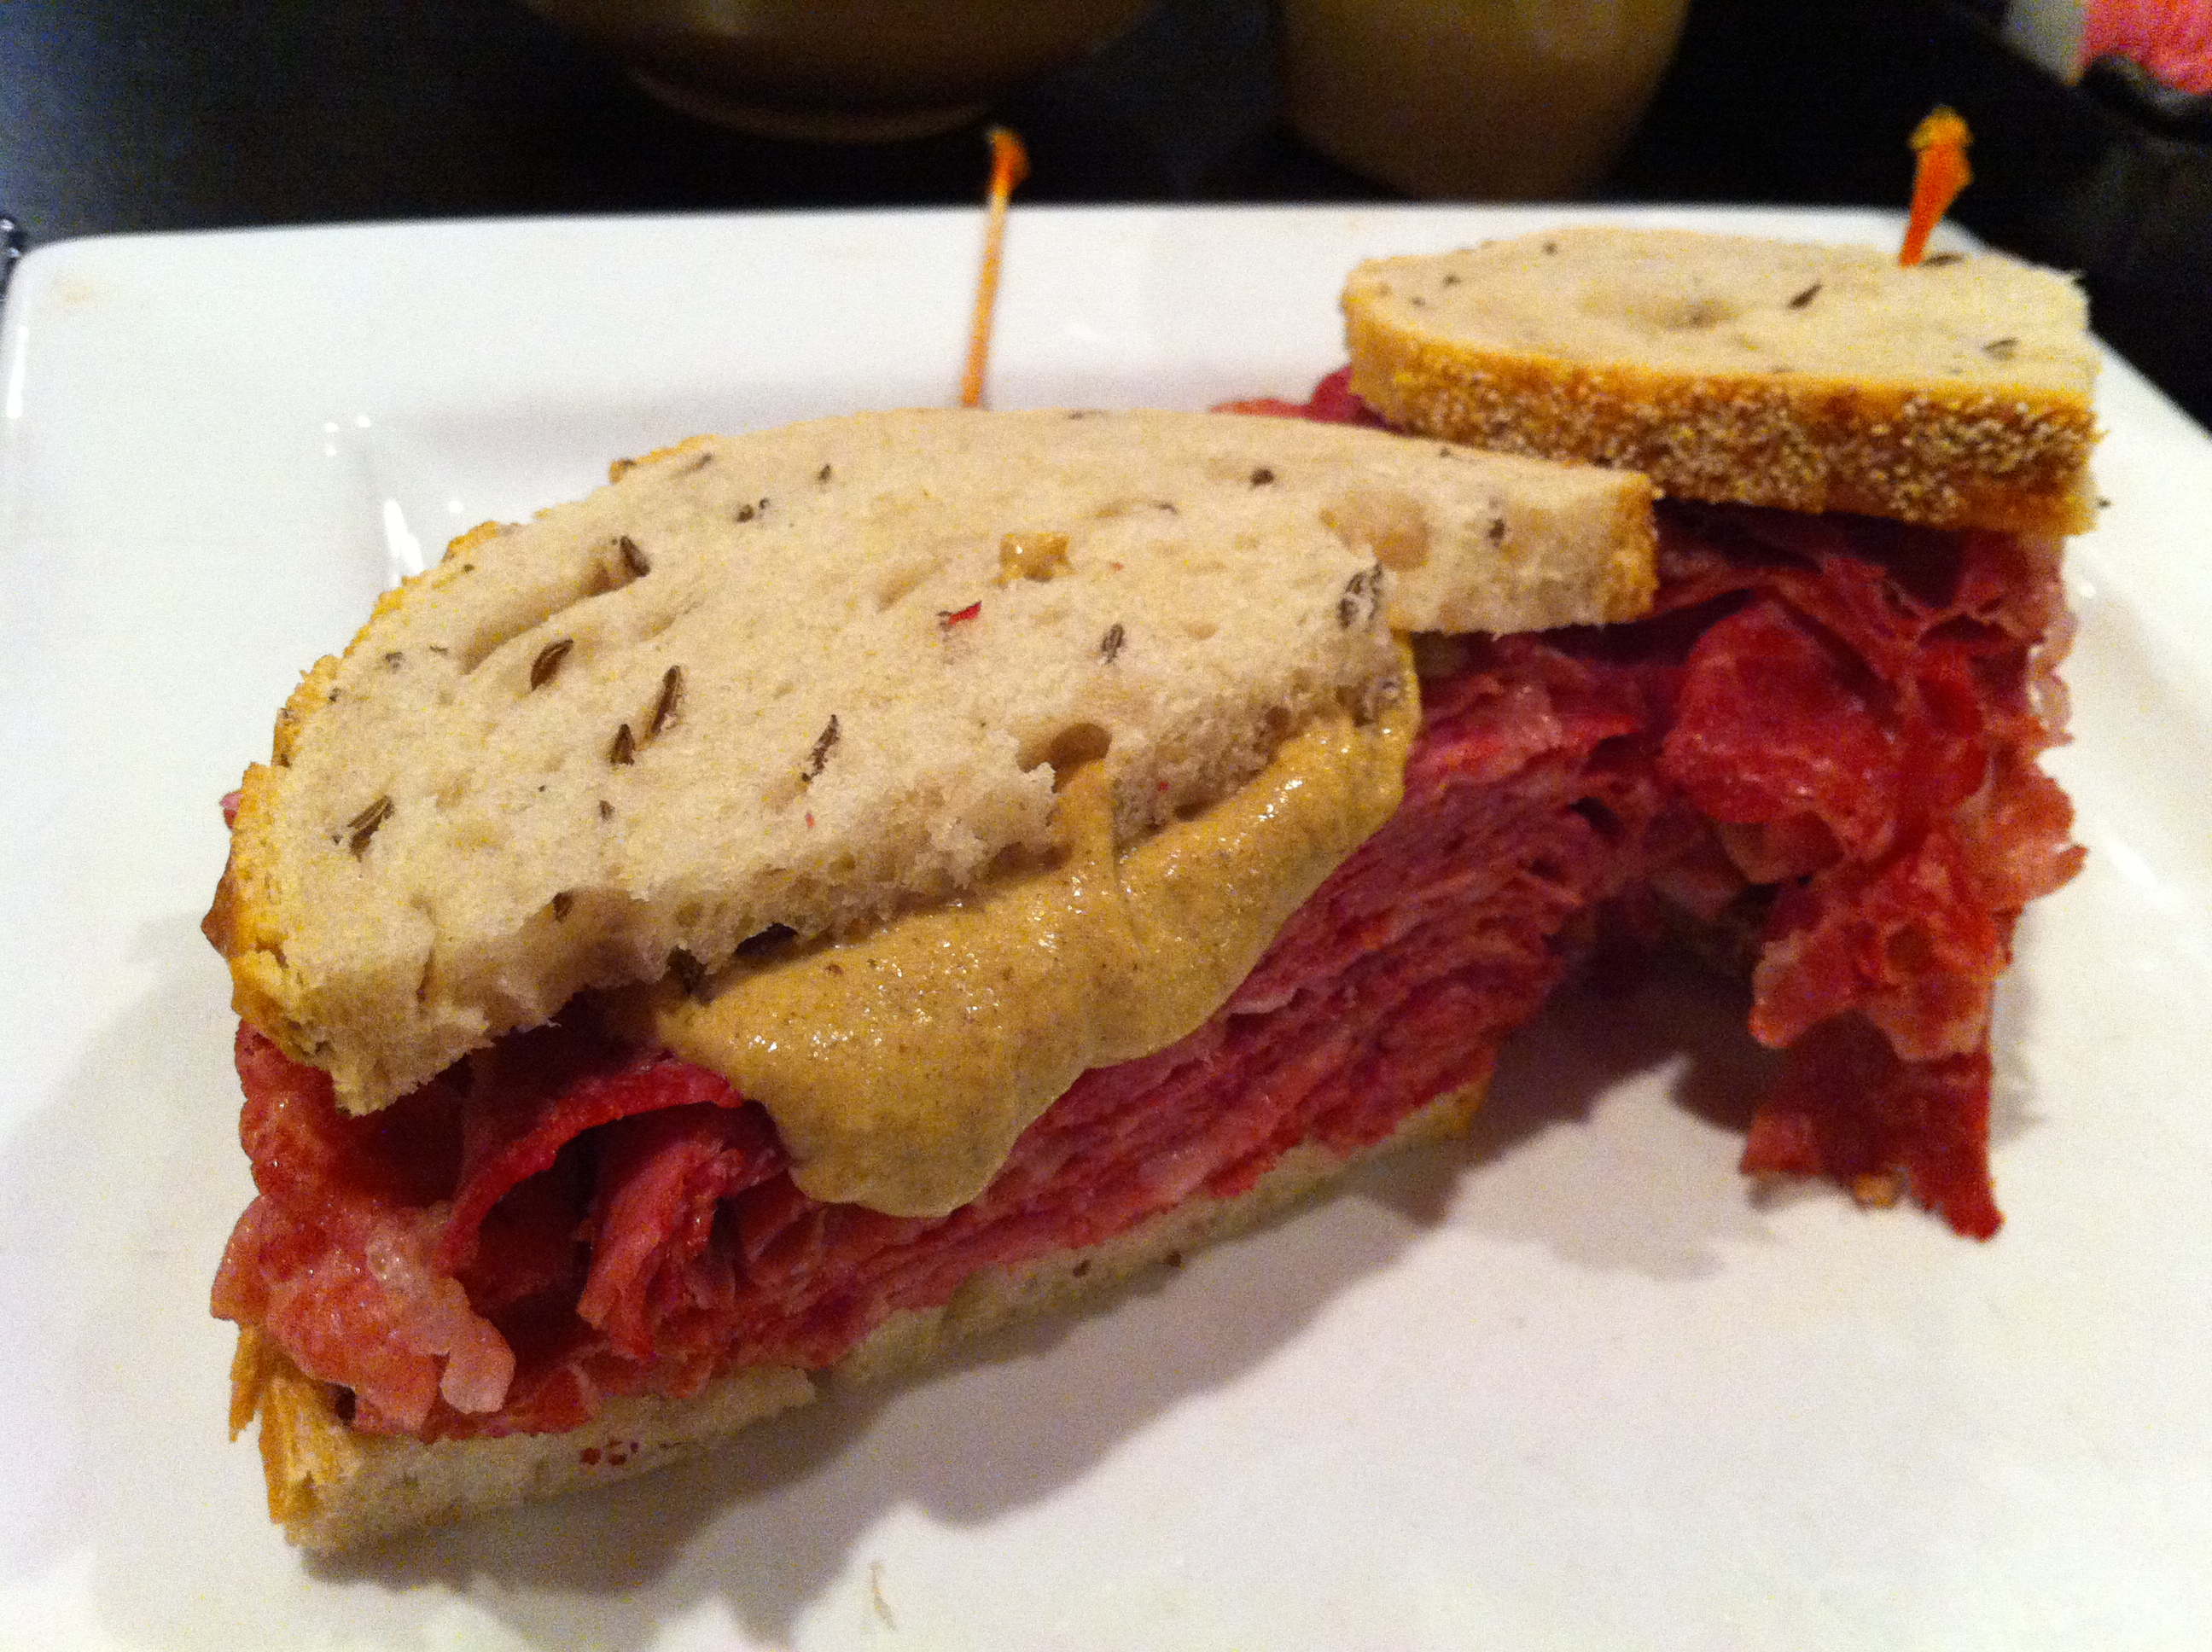 Silver Spring, MD — Dec. 12, 2011. The corned beef sandwich on